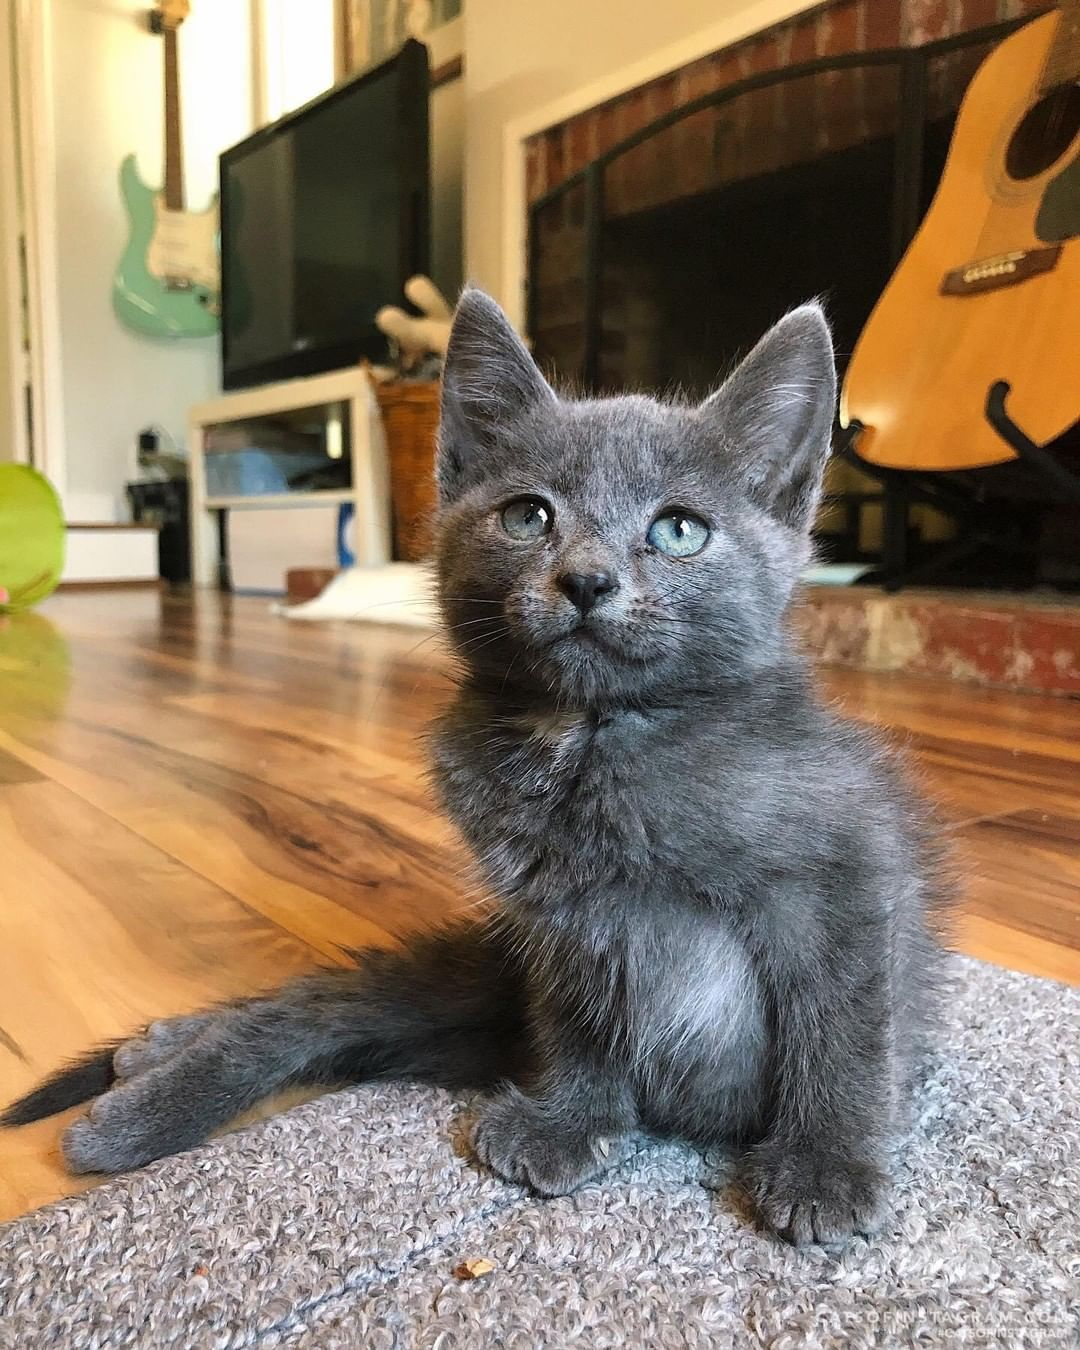 Cats Of Instagram On Instagram From Fosterpetsofsac Perry The Paralyzed Kitten Is So Happy Because He Just Found His In 2020 Cats Kittens Cutest Cats Of Instagram